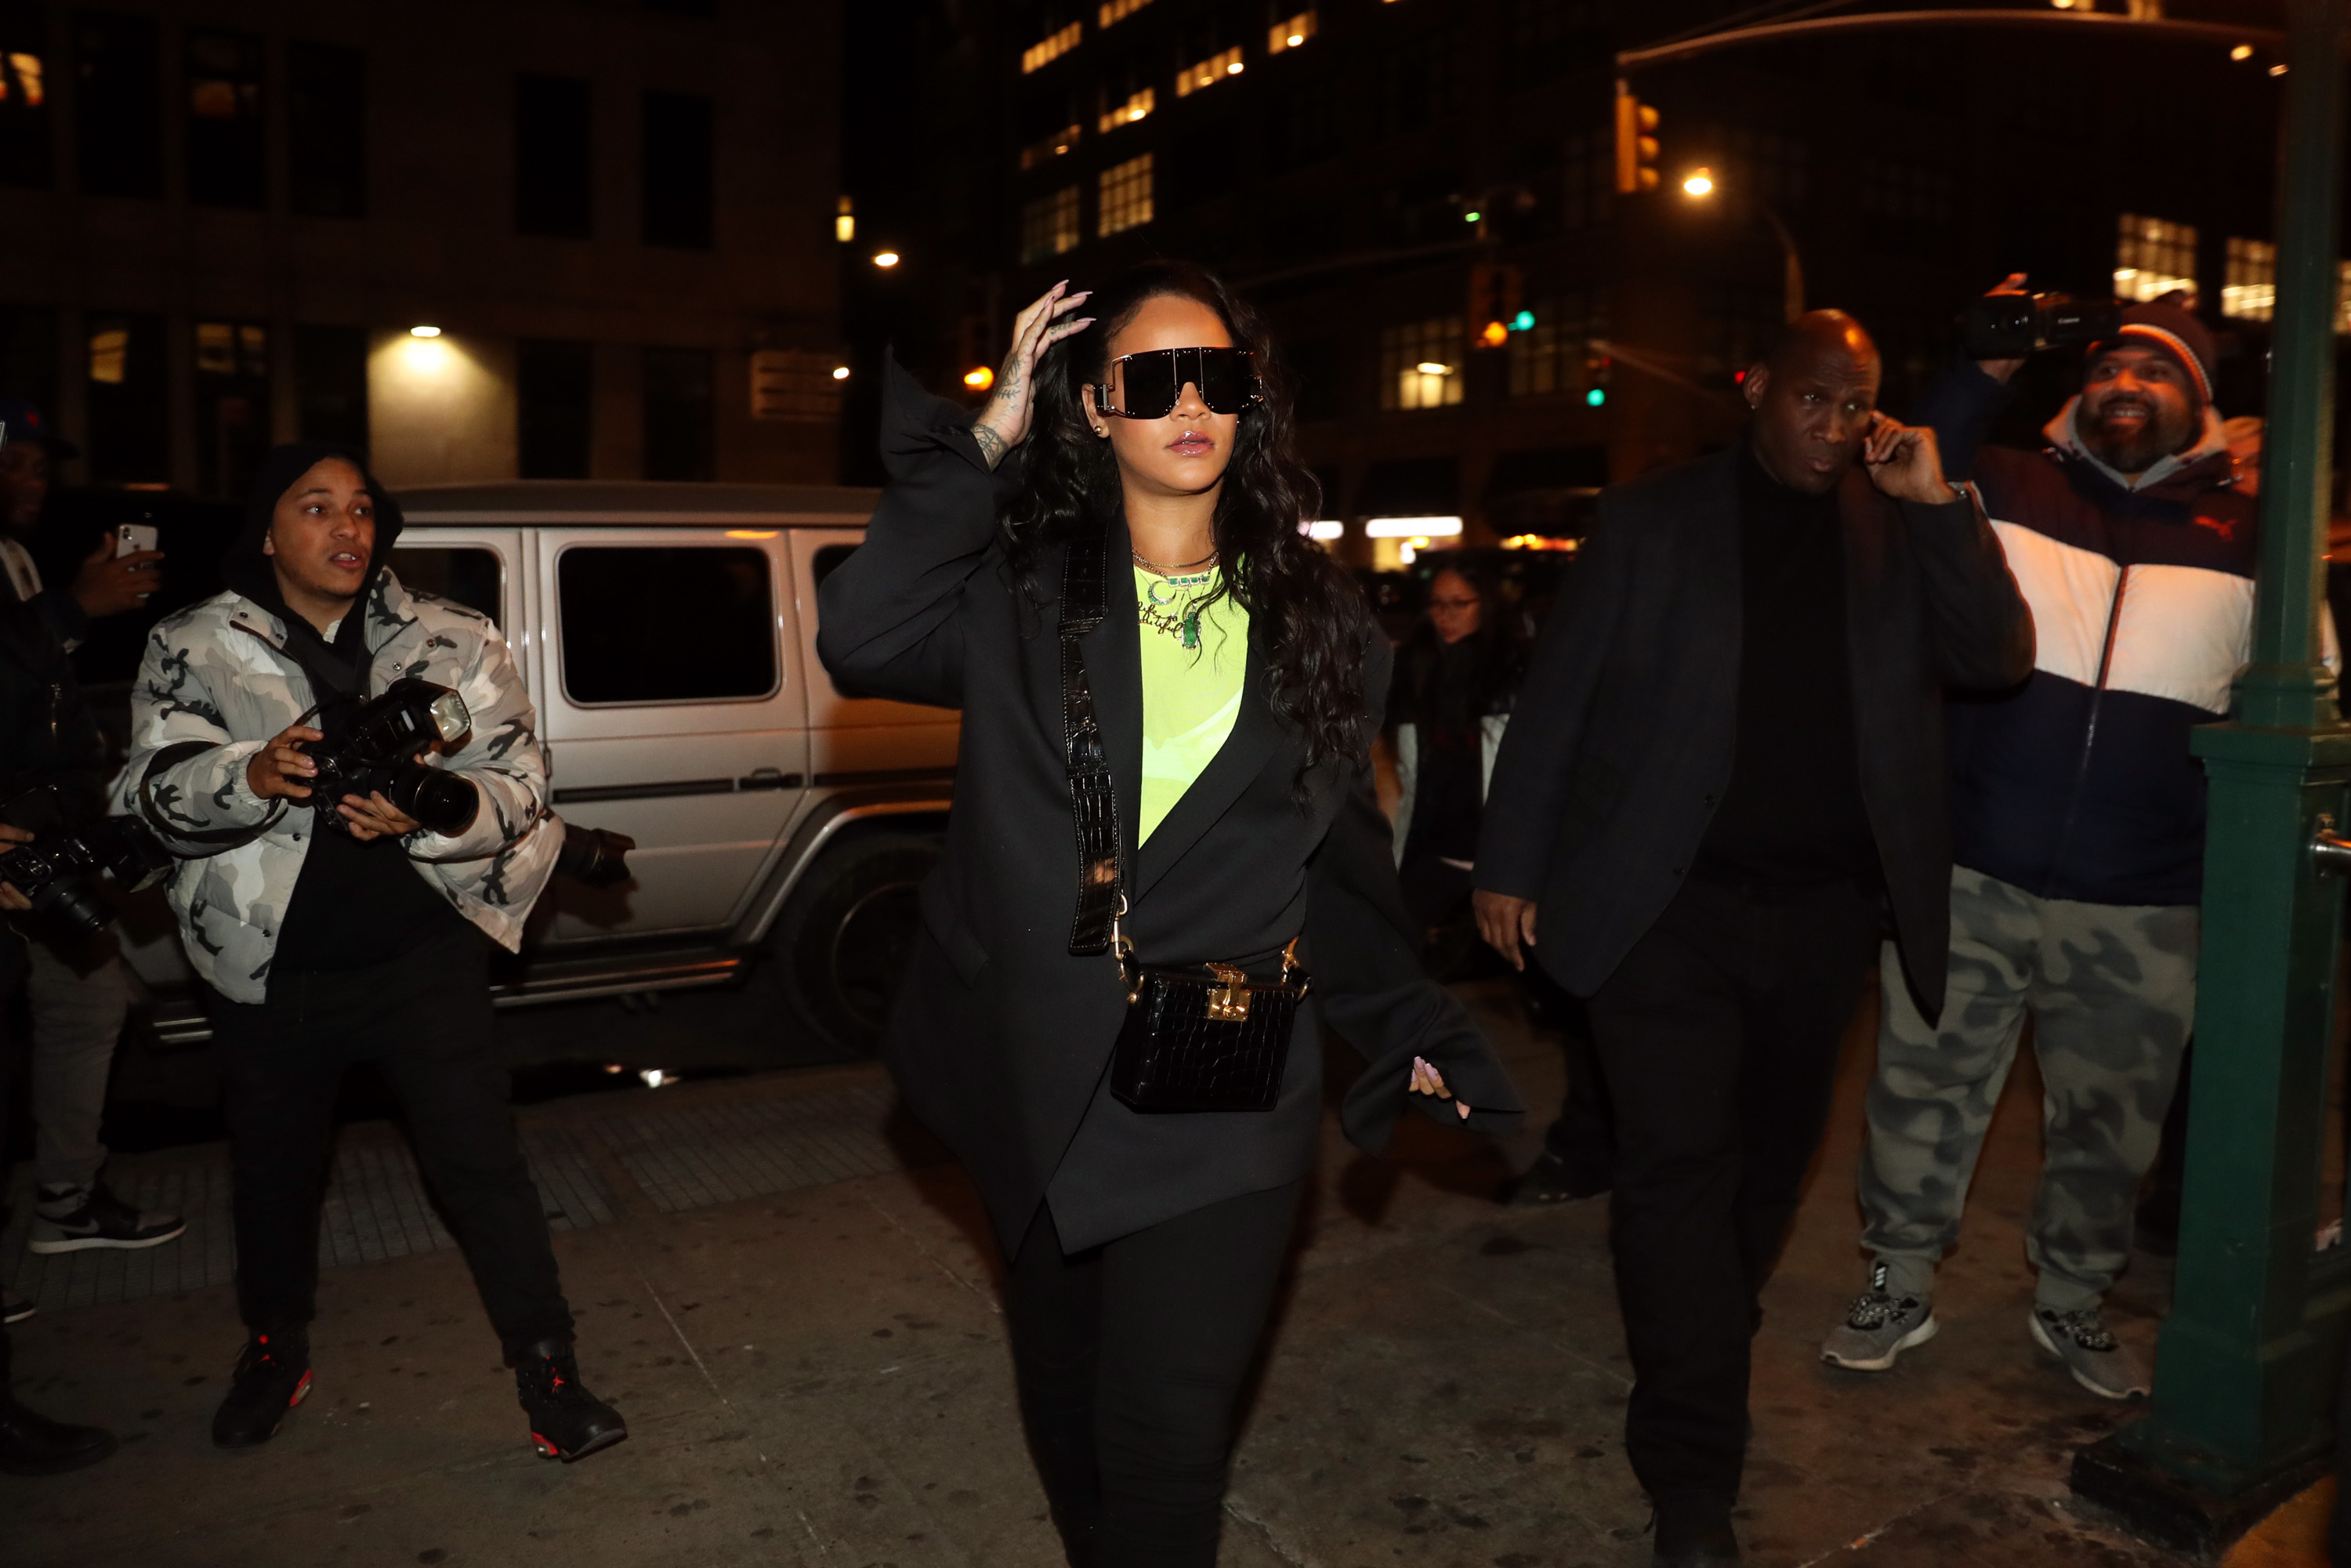 Rihanna (c) attends 718 Spank In Concert at S.O.B.'s on January 14, 2019 in New York City.